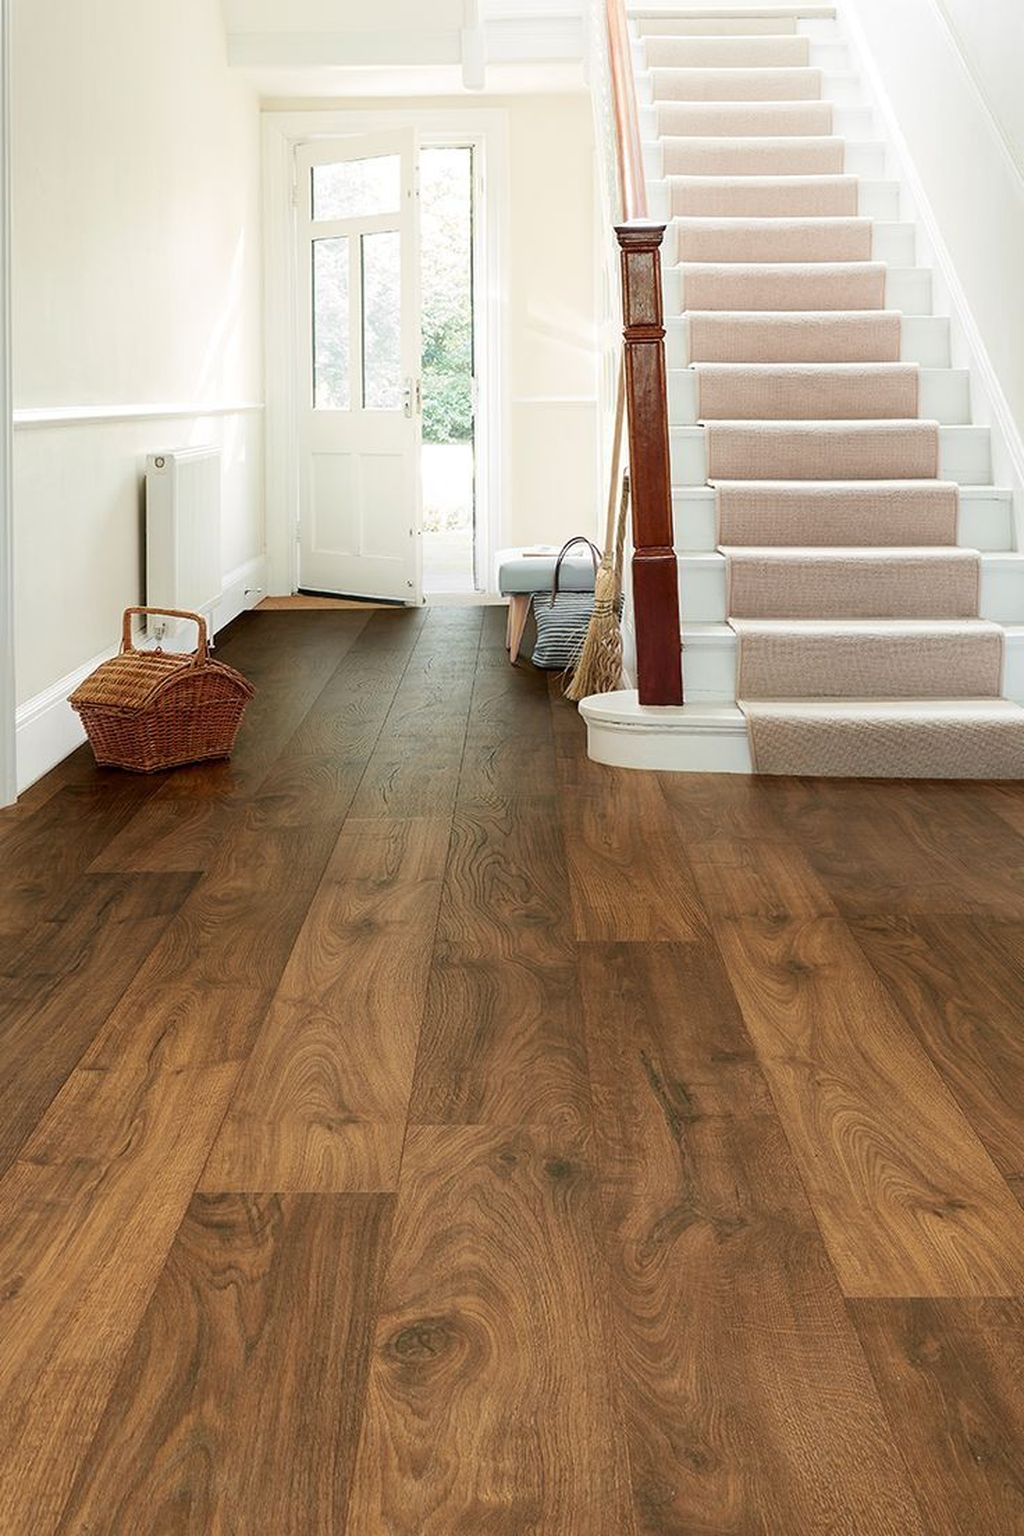 Awesome Wooden Tiles Flooring Ideas 26